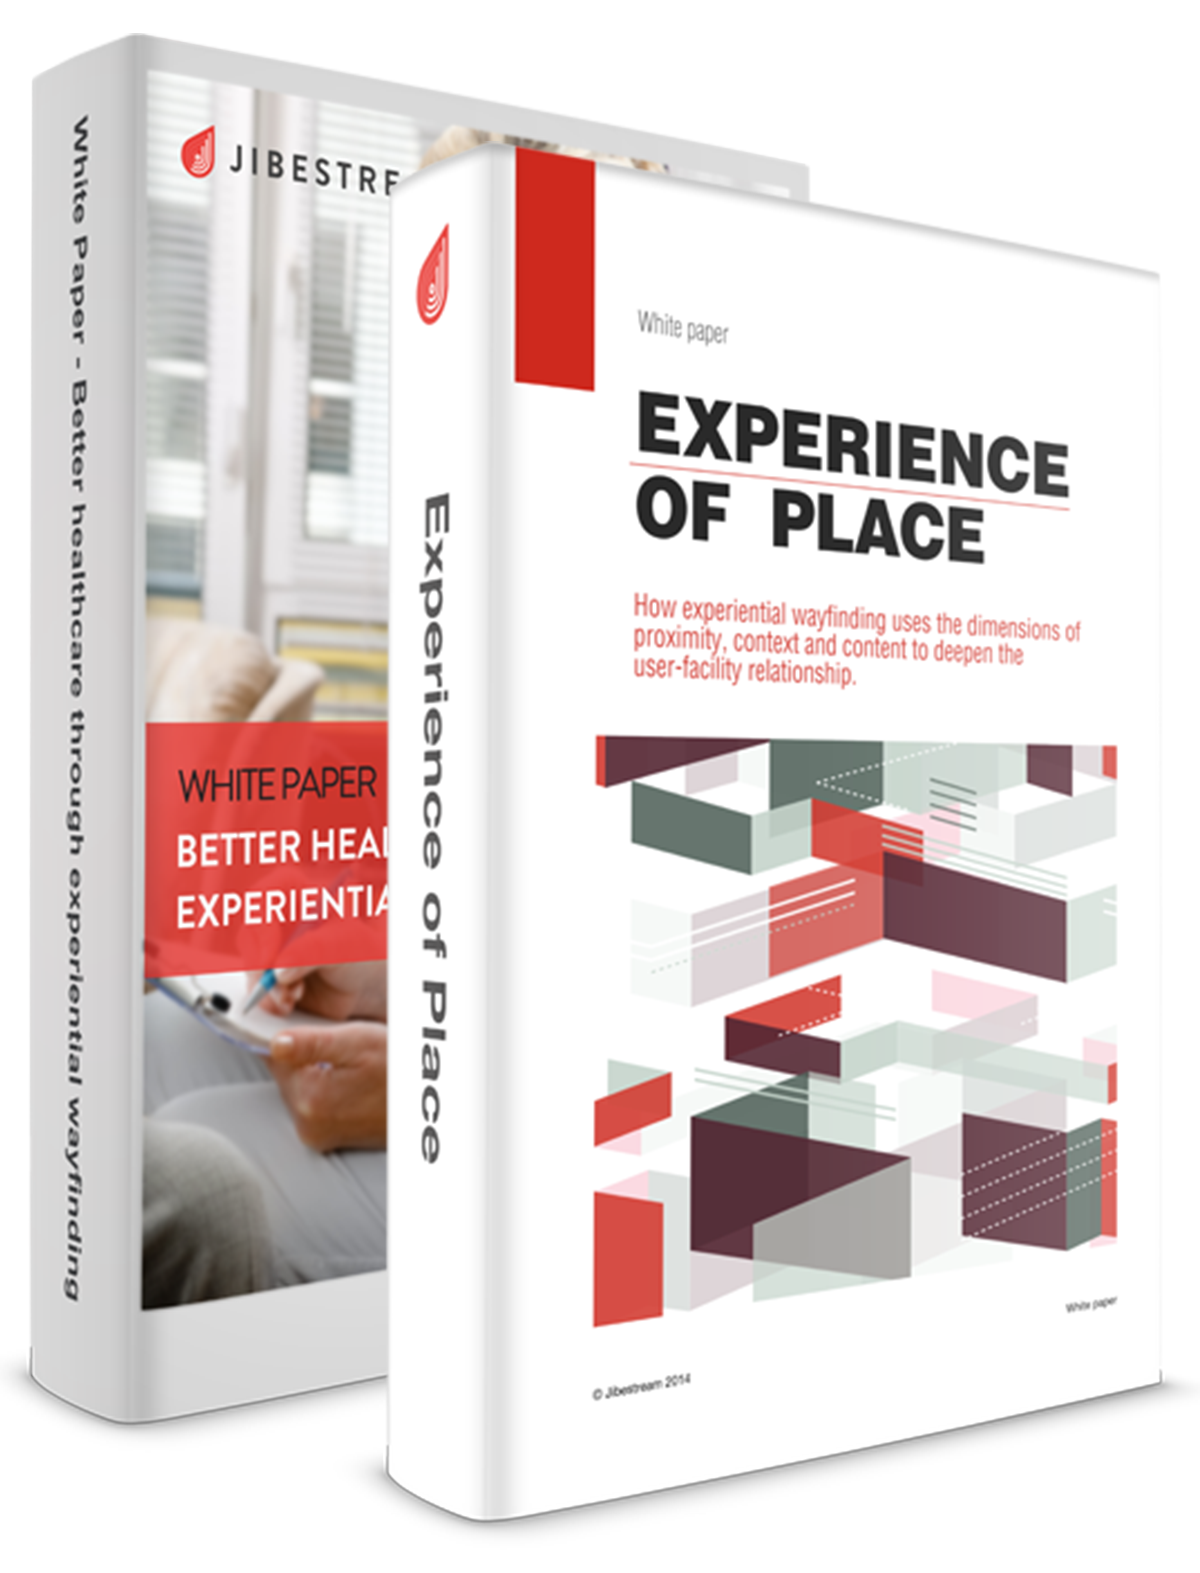 Wayfinding Experience of Place